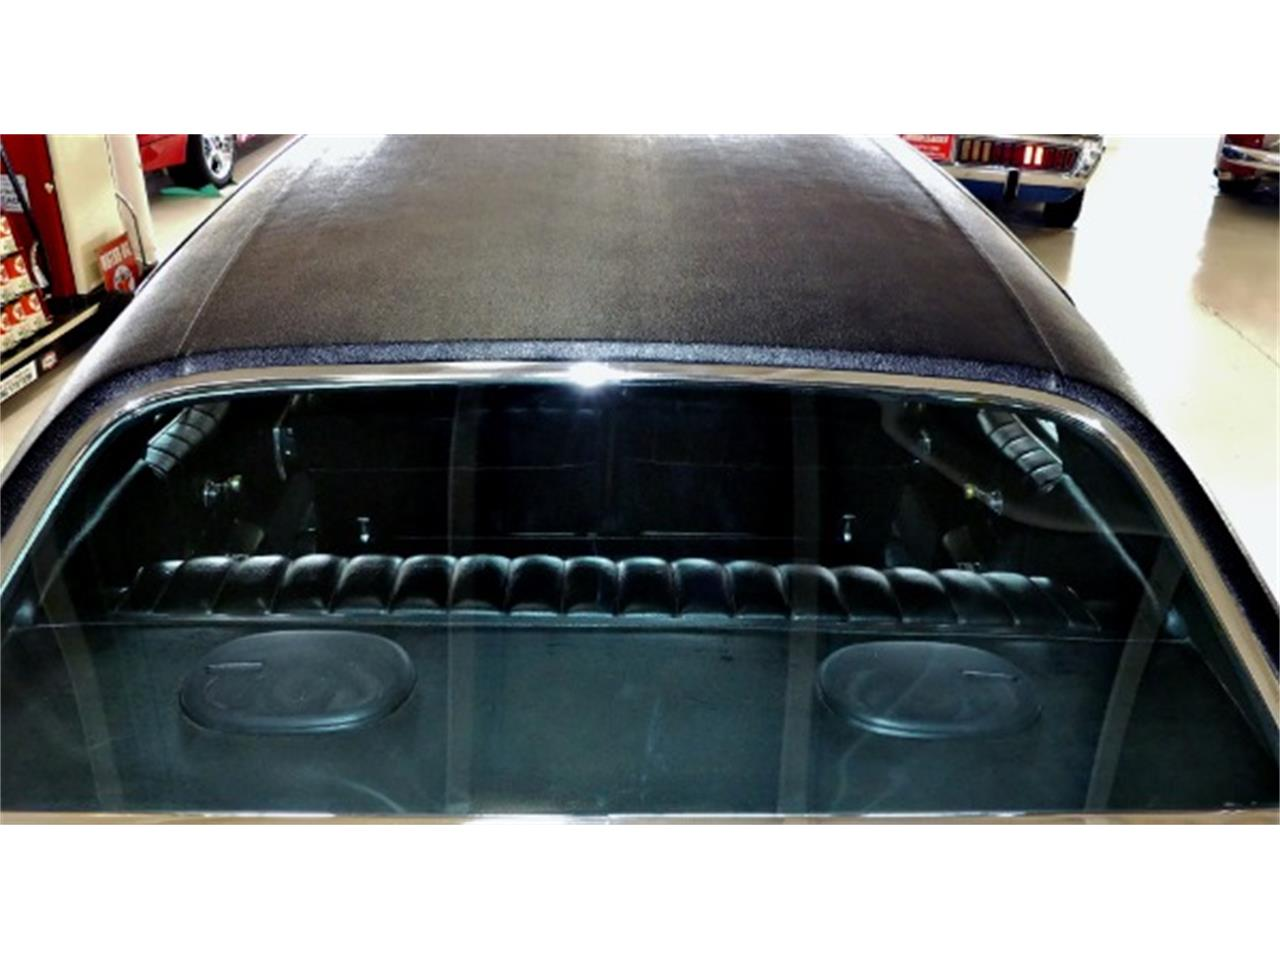 Large Picture of Classic 1972 Chevrolet Monte Carlo located in Ohio Offered by Cruisin Classics - OG2T